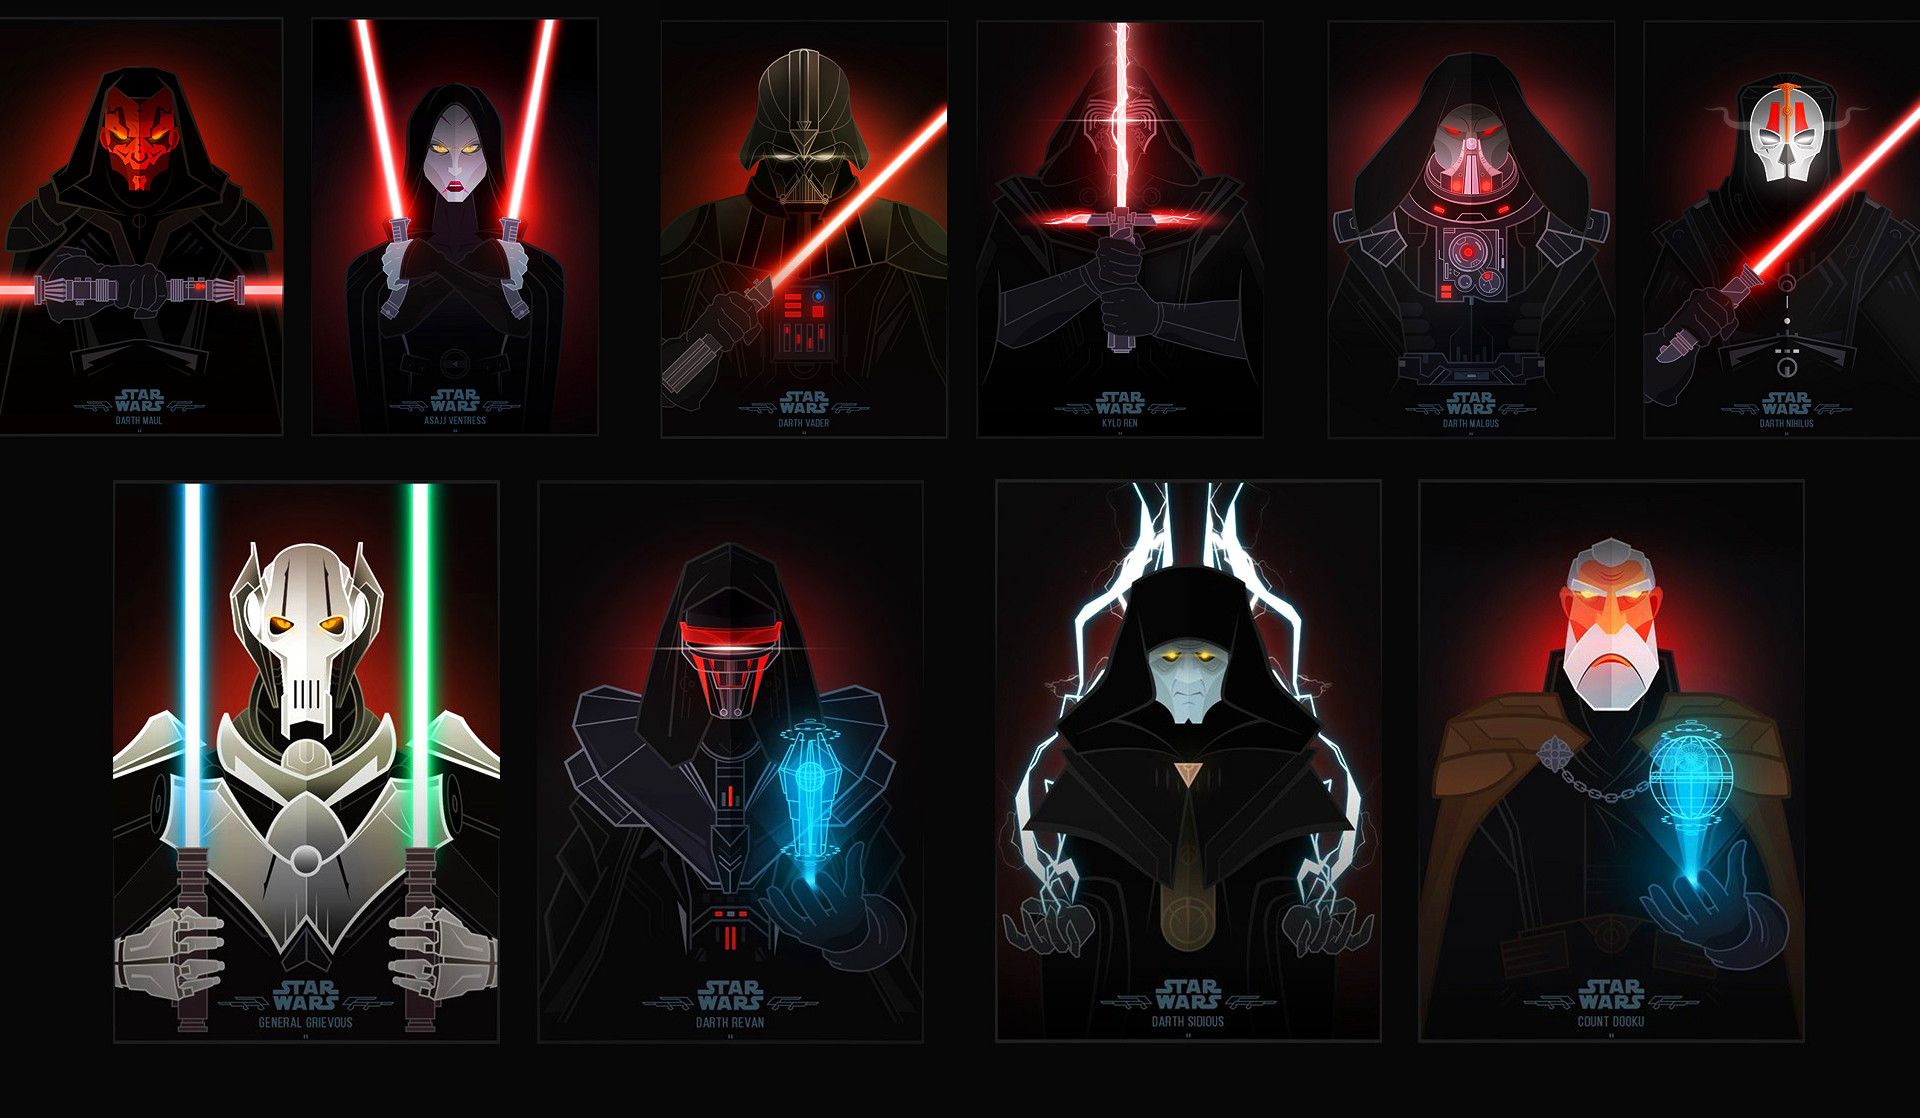 1920x1118 fiction wallpaper hd star wars sith wallpapers hd resolution at .